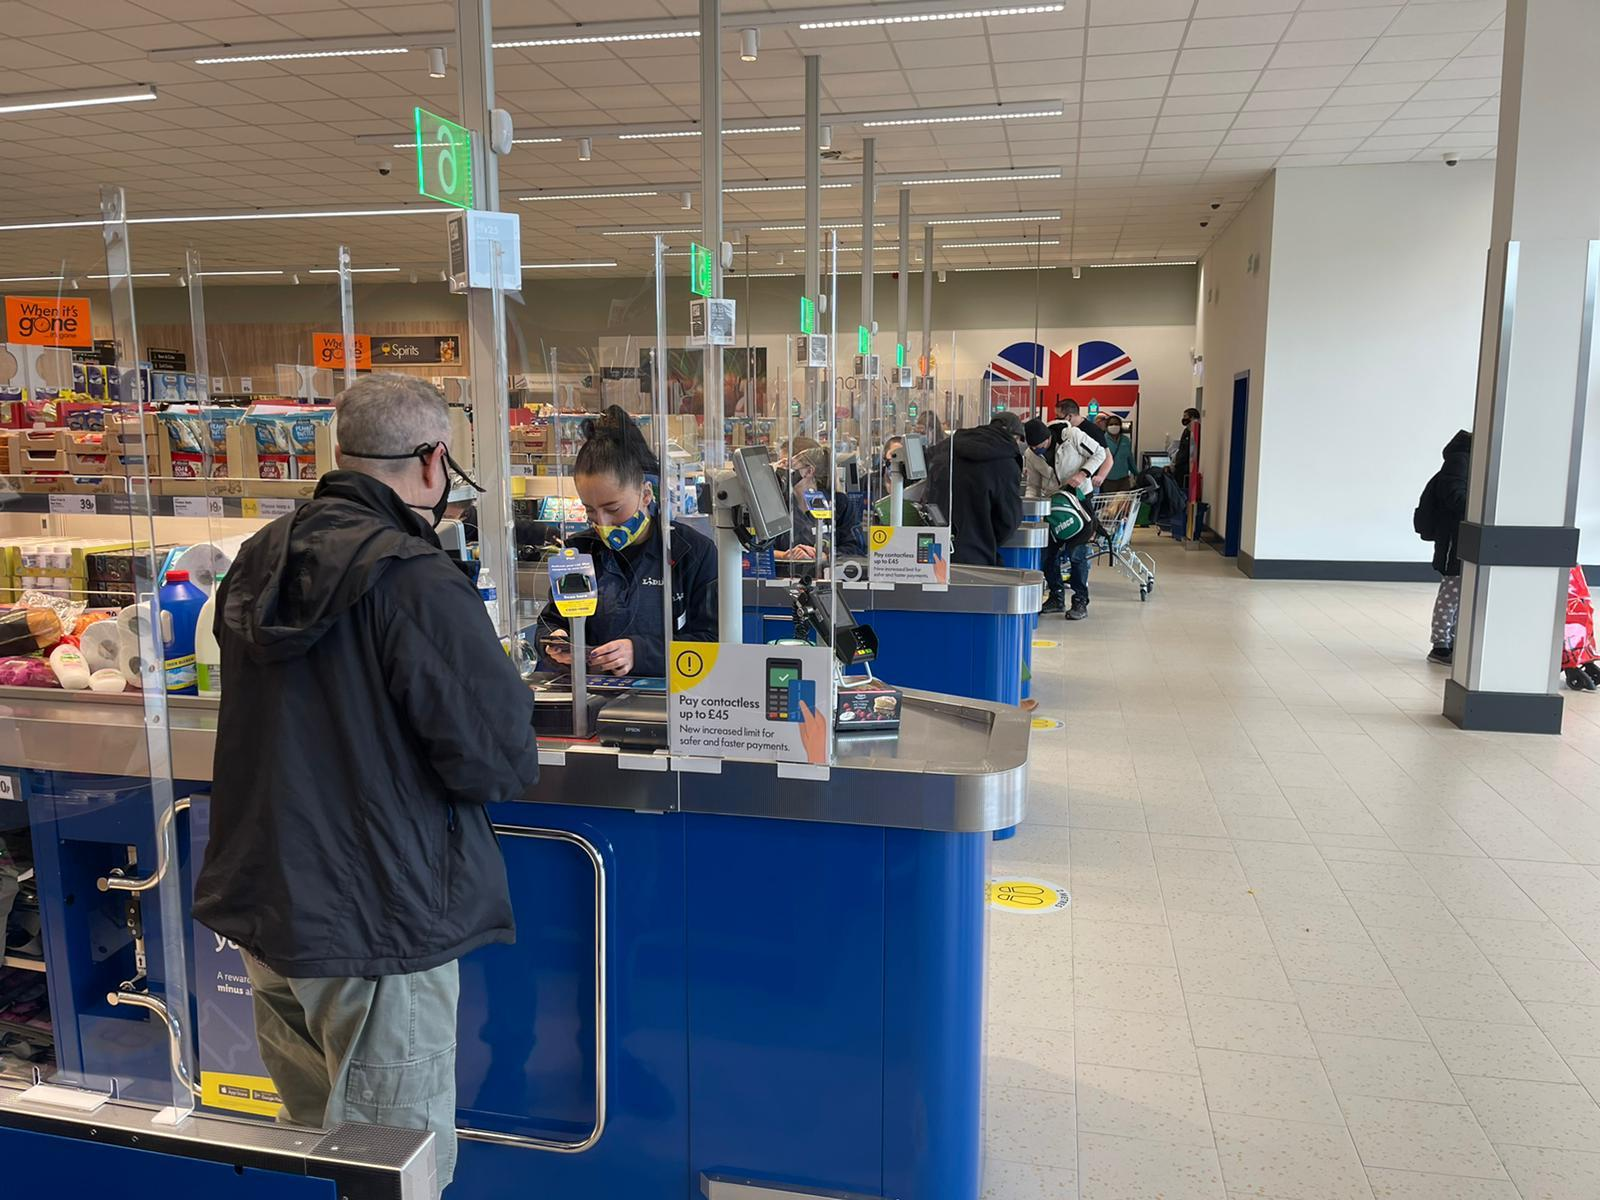 A first look inside the new Lidl store at the Goldstone Retail Park in Hove